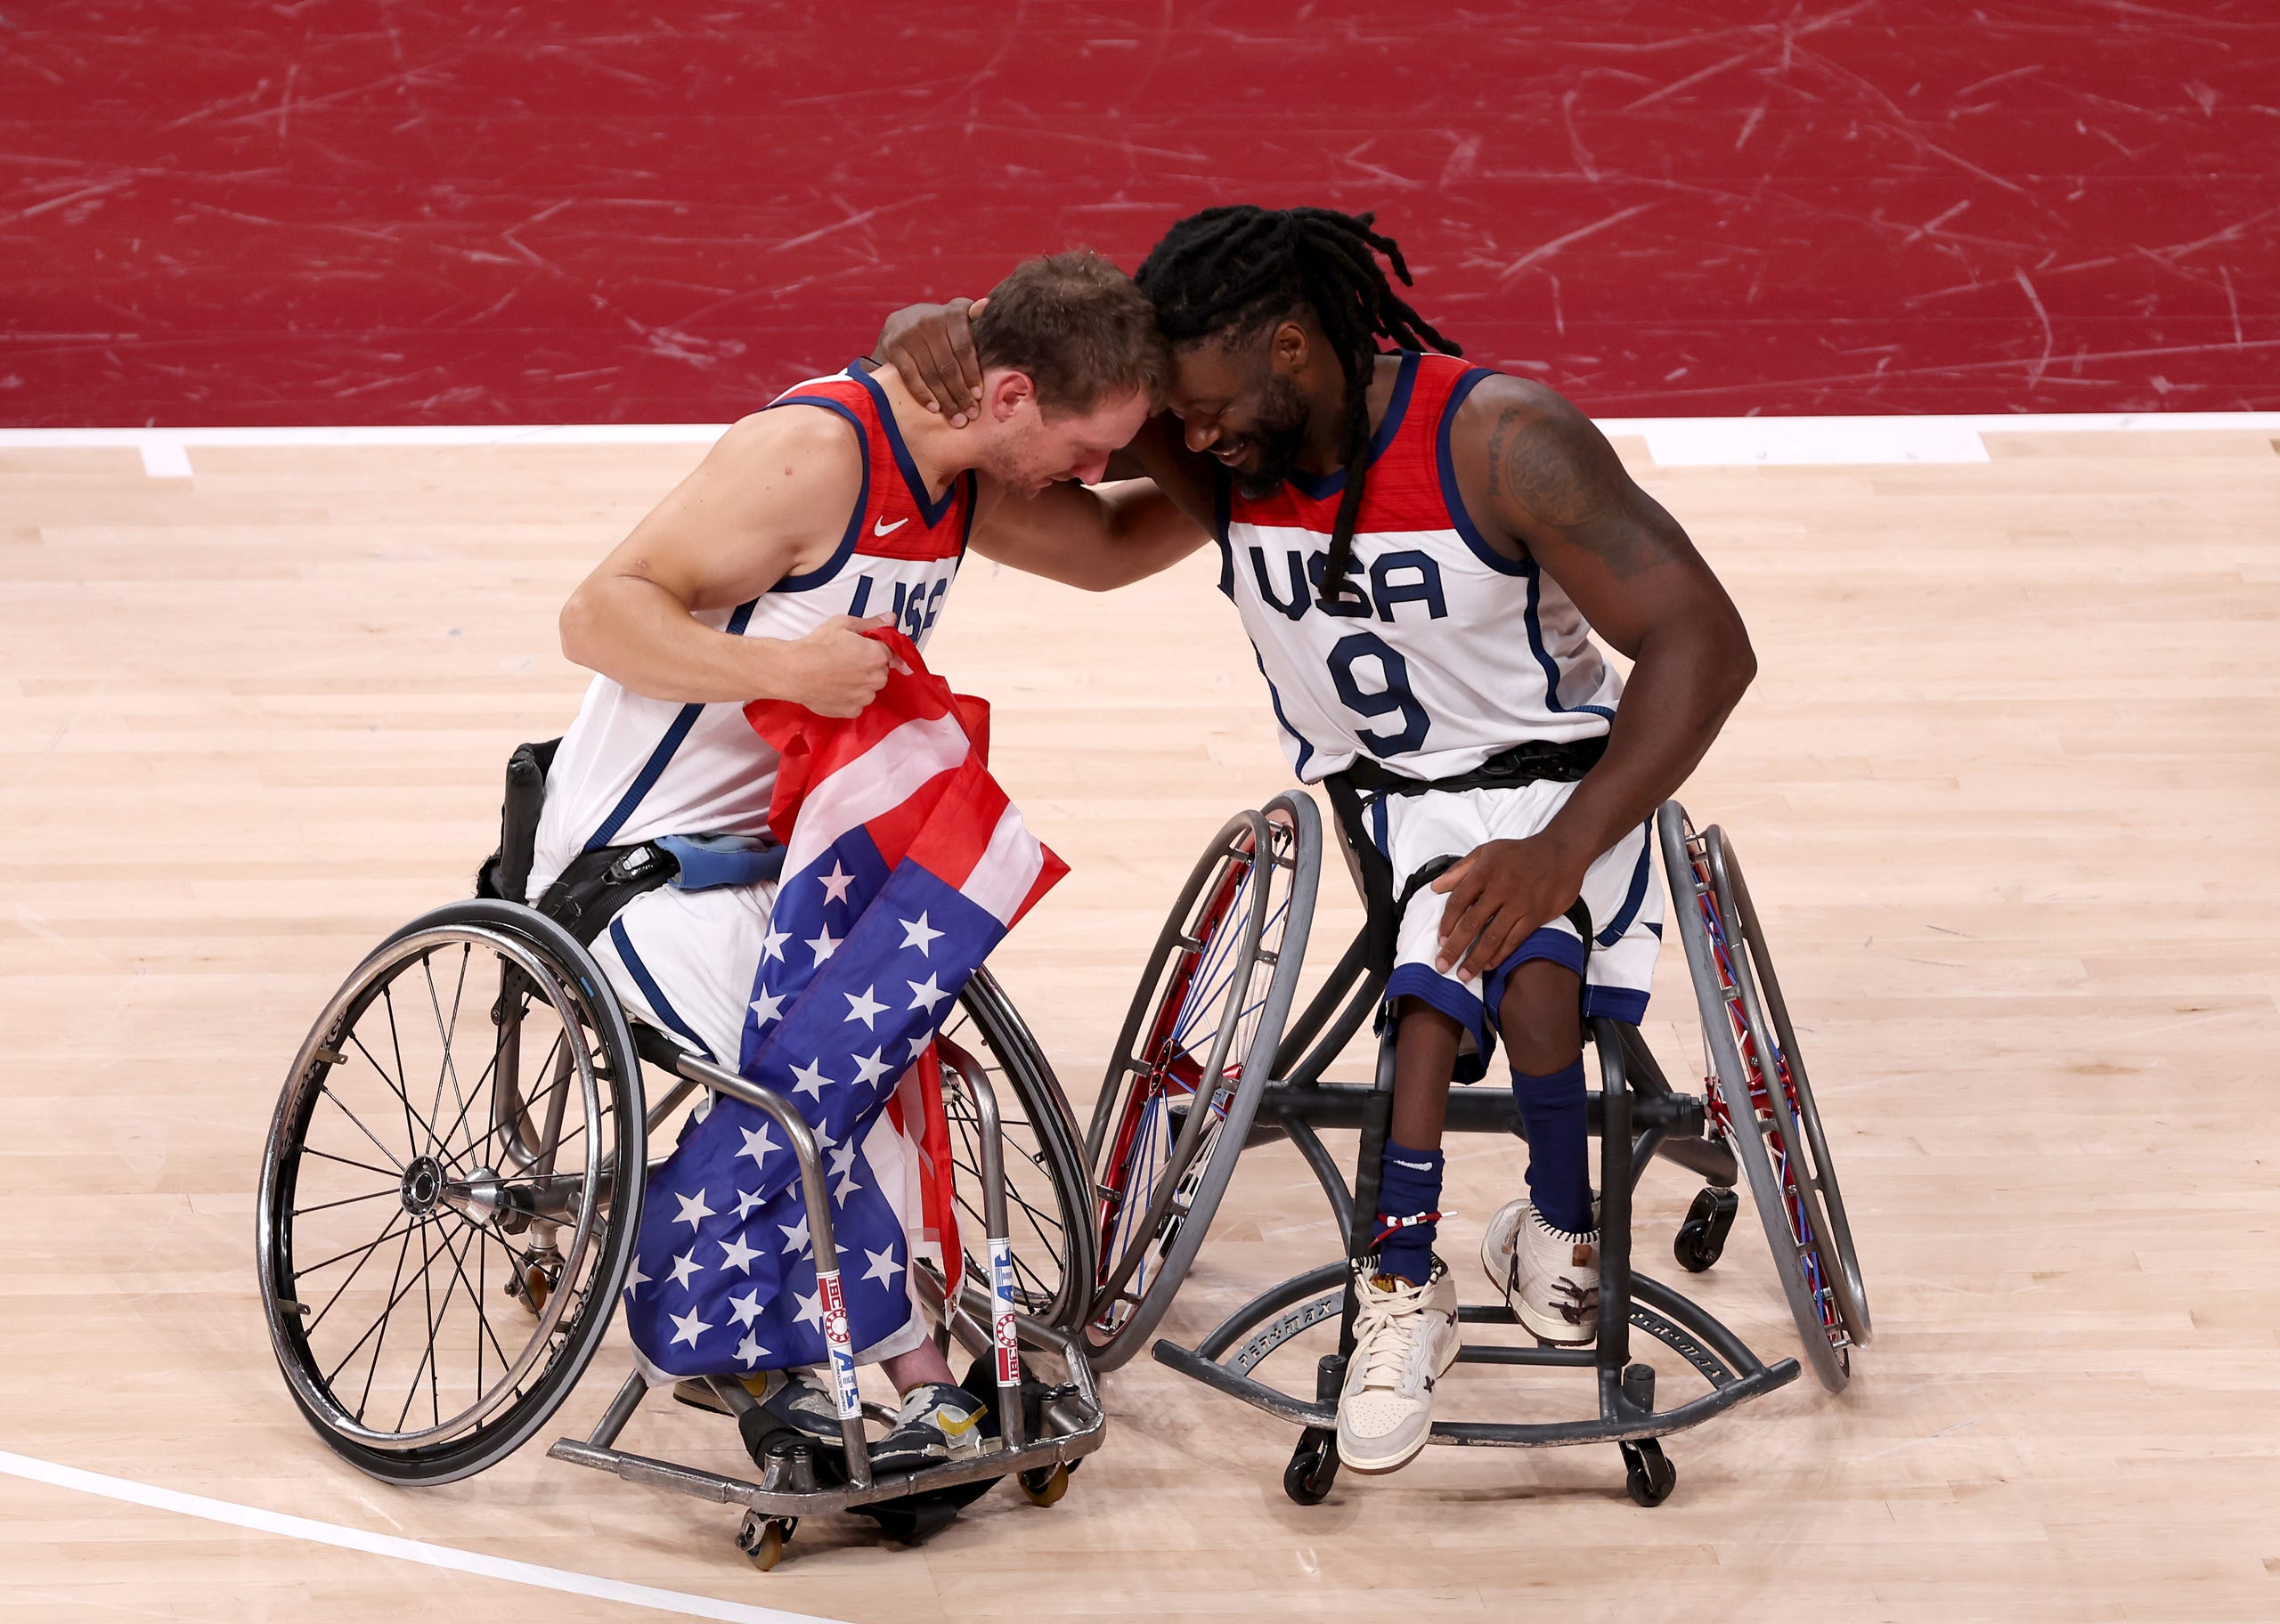 Sept. 5, 2021: Michael Paye #5 and Matt Scott #9 of Team United States celebrate after defeating Team Japan during the men's Wheelchair Basketball gold medal game on day 12 of the Tokyo 2020 Paralympic Games at Ariake Arena in Tokyo, Japan.